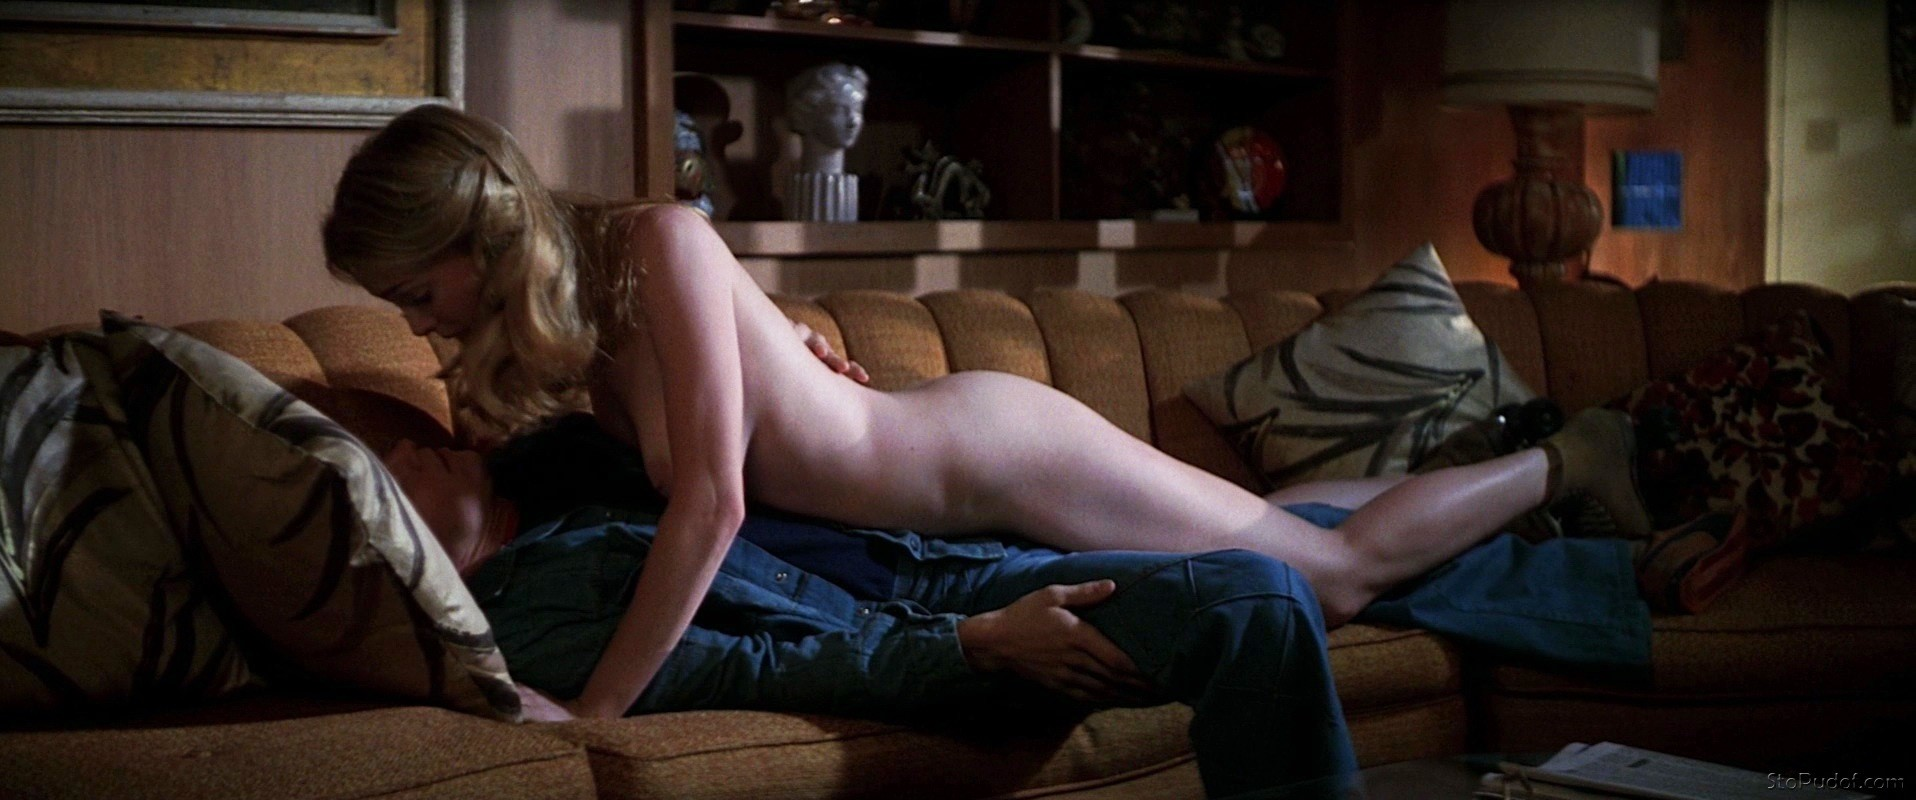 nude leaked pics Heather Graham - UkPhotoSafari